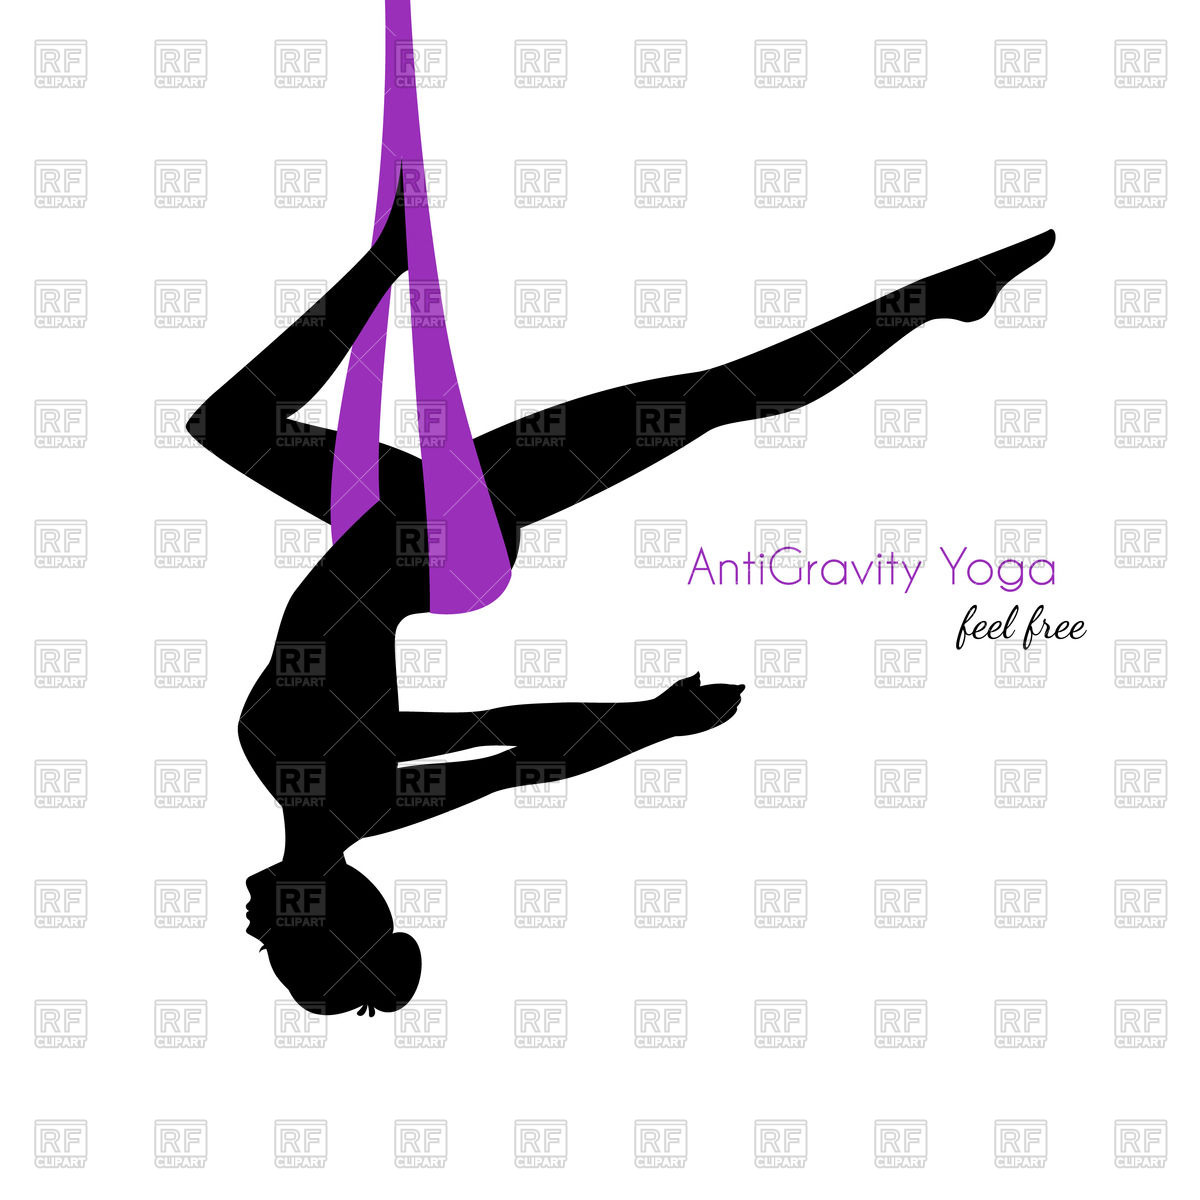 1200x1200 Silhouette Of Woman In Anti Gravity Yoga Poses Royalty Free Vector